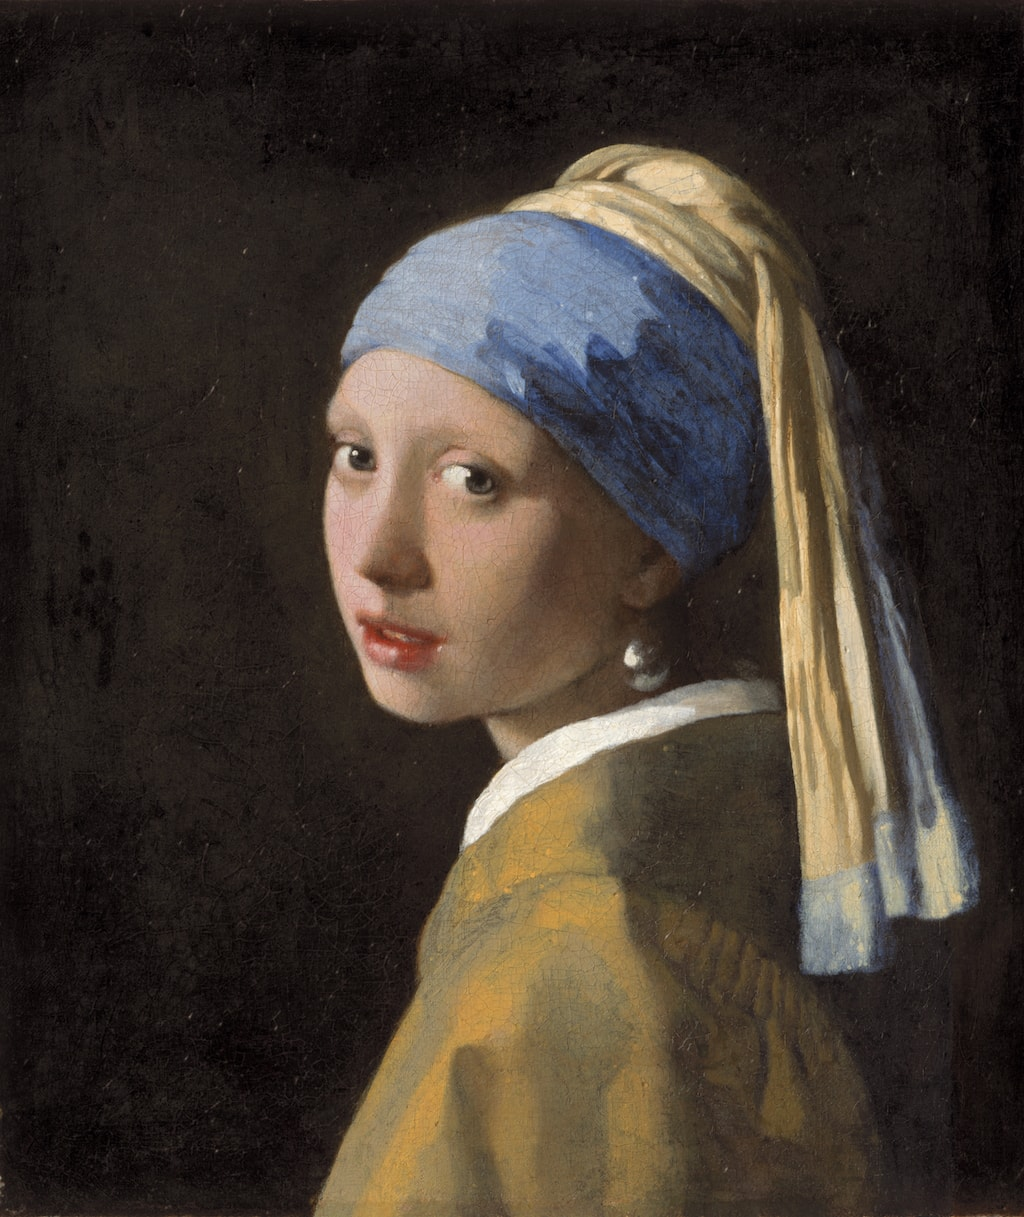 Johannes Vermeer, 'Girl with a Pearl Earring,' c. 1665 | © Mauritshuis, The Hague